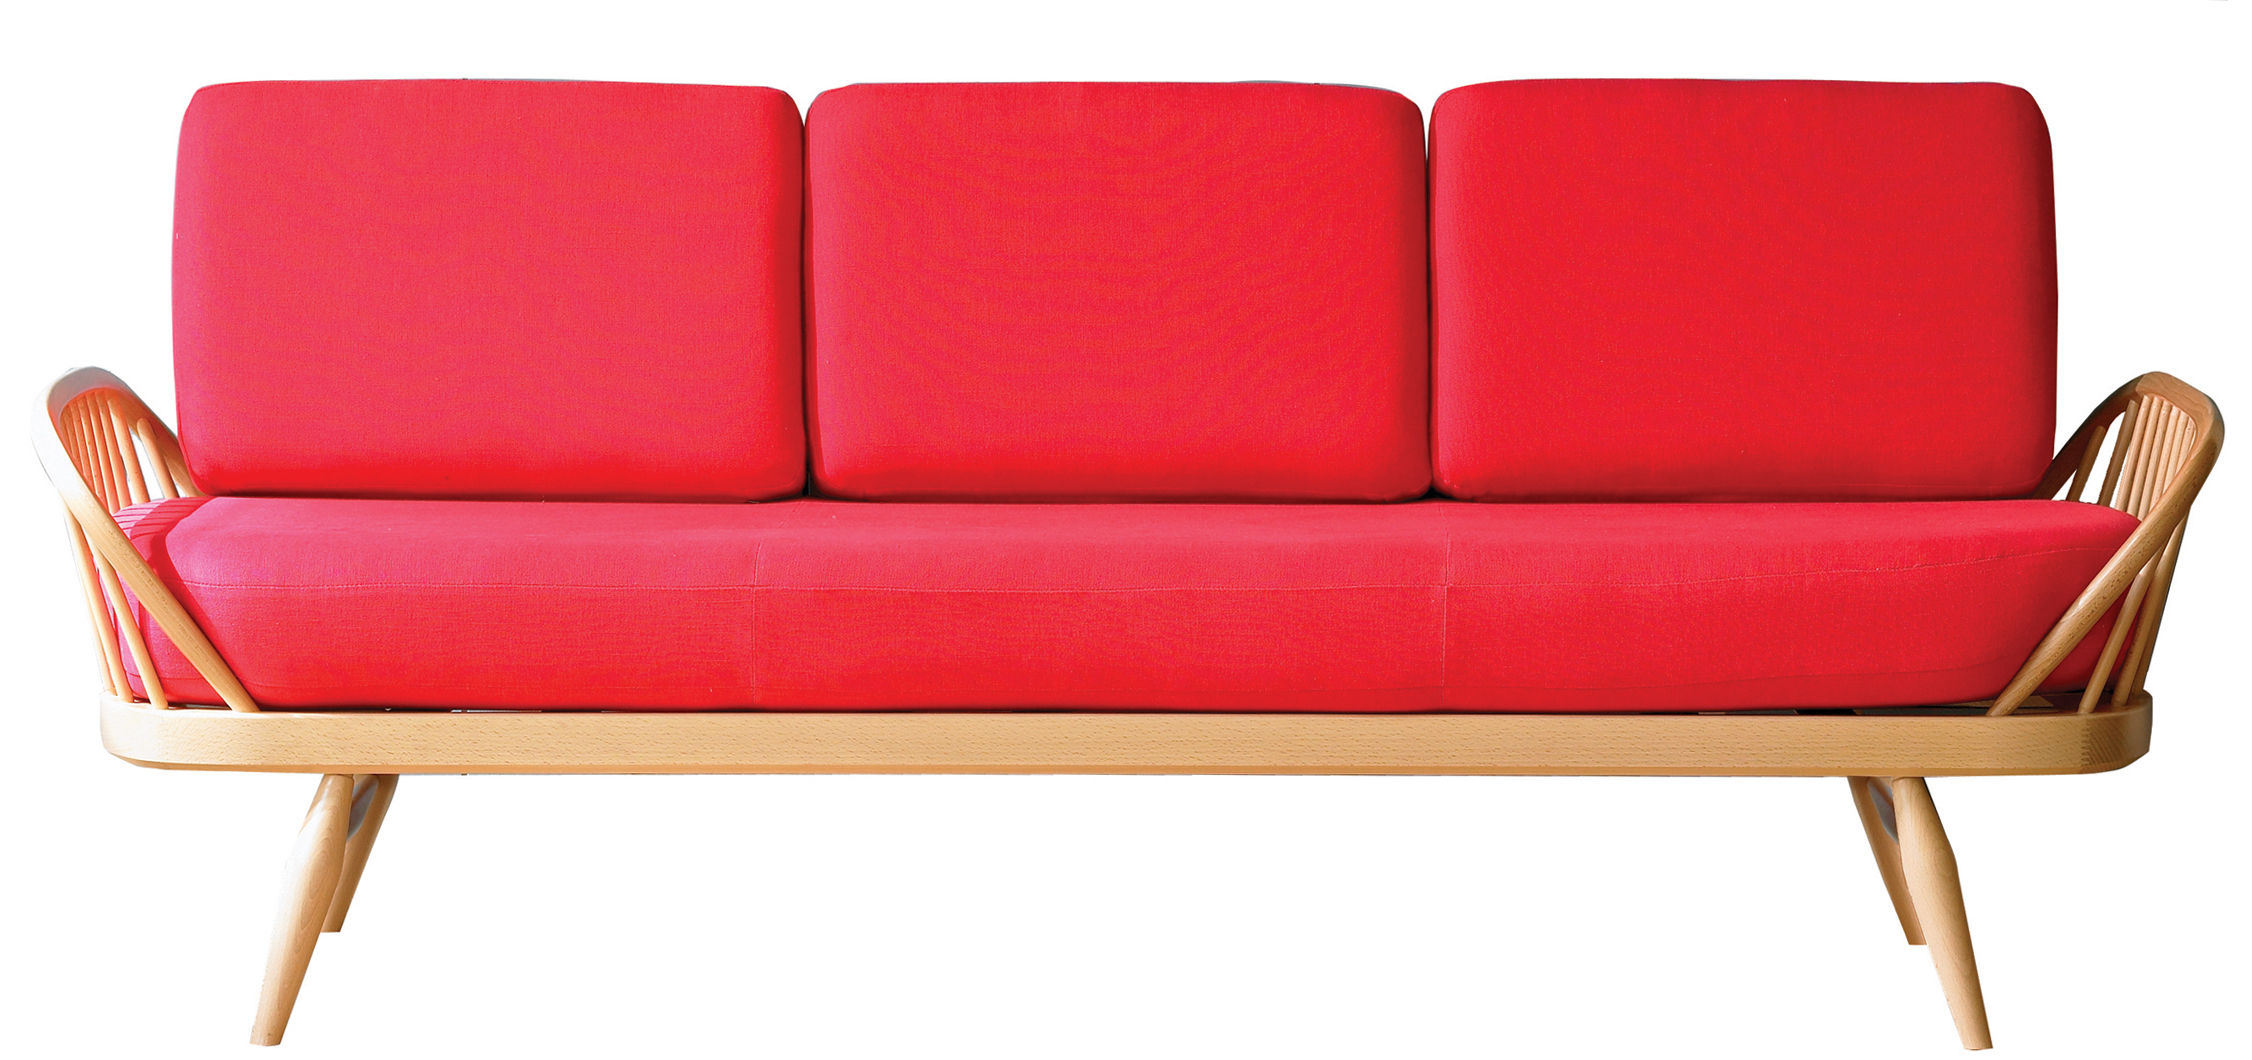 Furniture - Sofas - Studio Couch Straight sofa - 3 seaters / L 206 cm - Reissue 1950' by Ercol - Red / Natural wood - Fabric, Foam, Natural beechwood, Solid elm